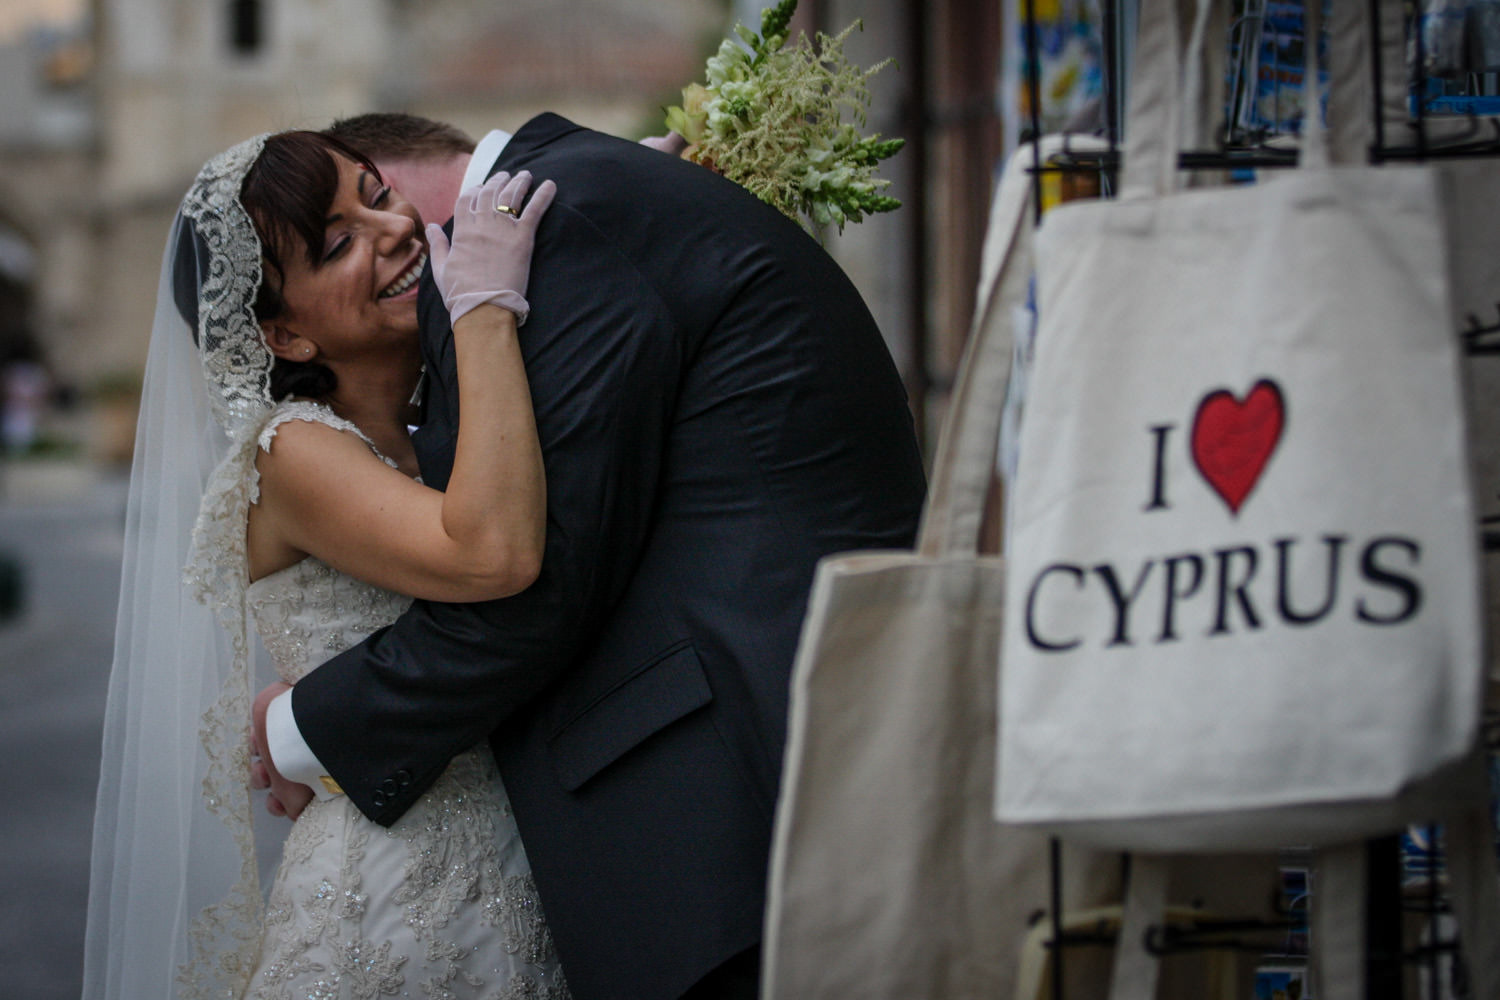 Bride and groom laughing in street in Larnaca Cyprus with bag saying I love Cyprus